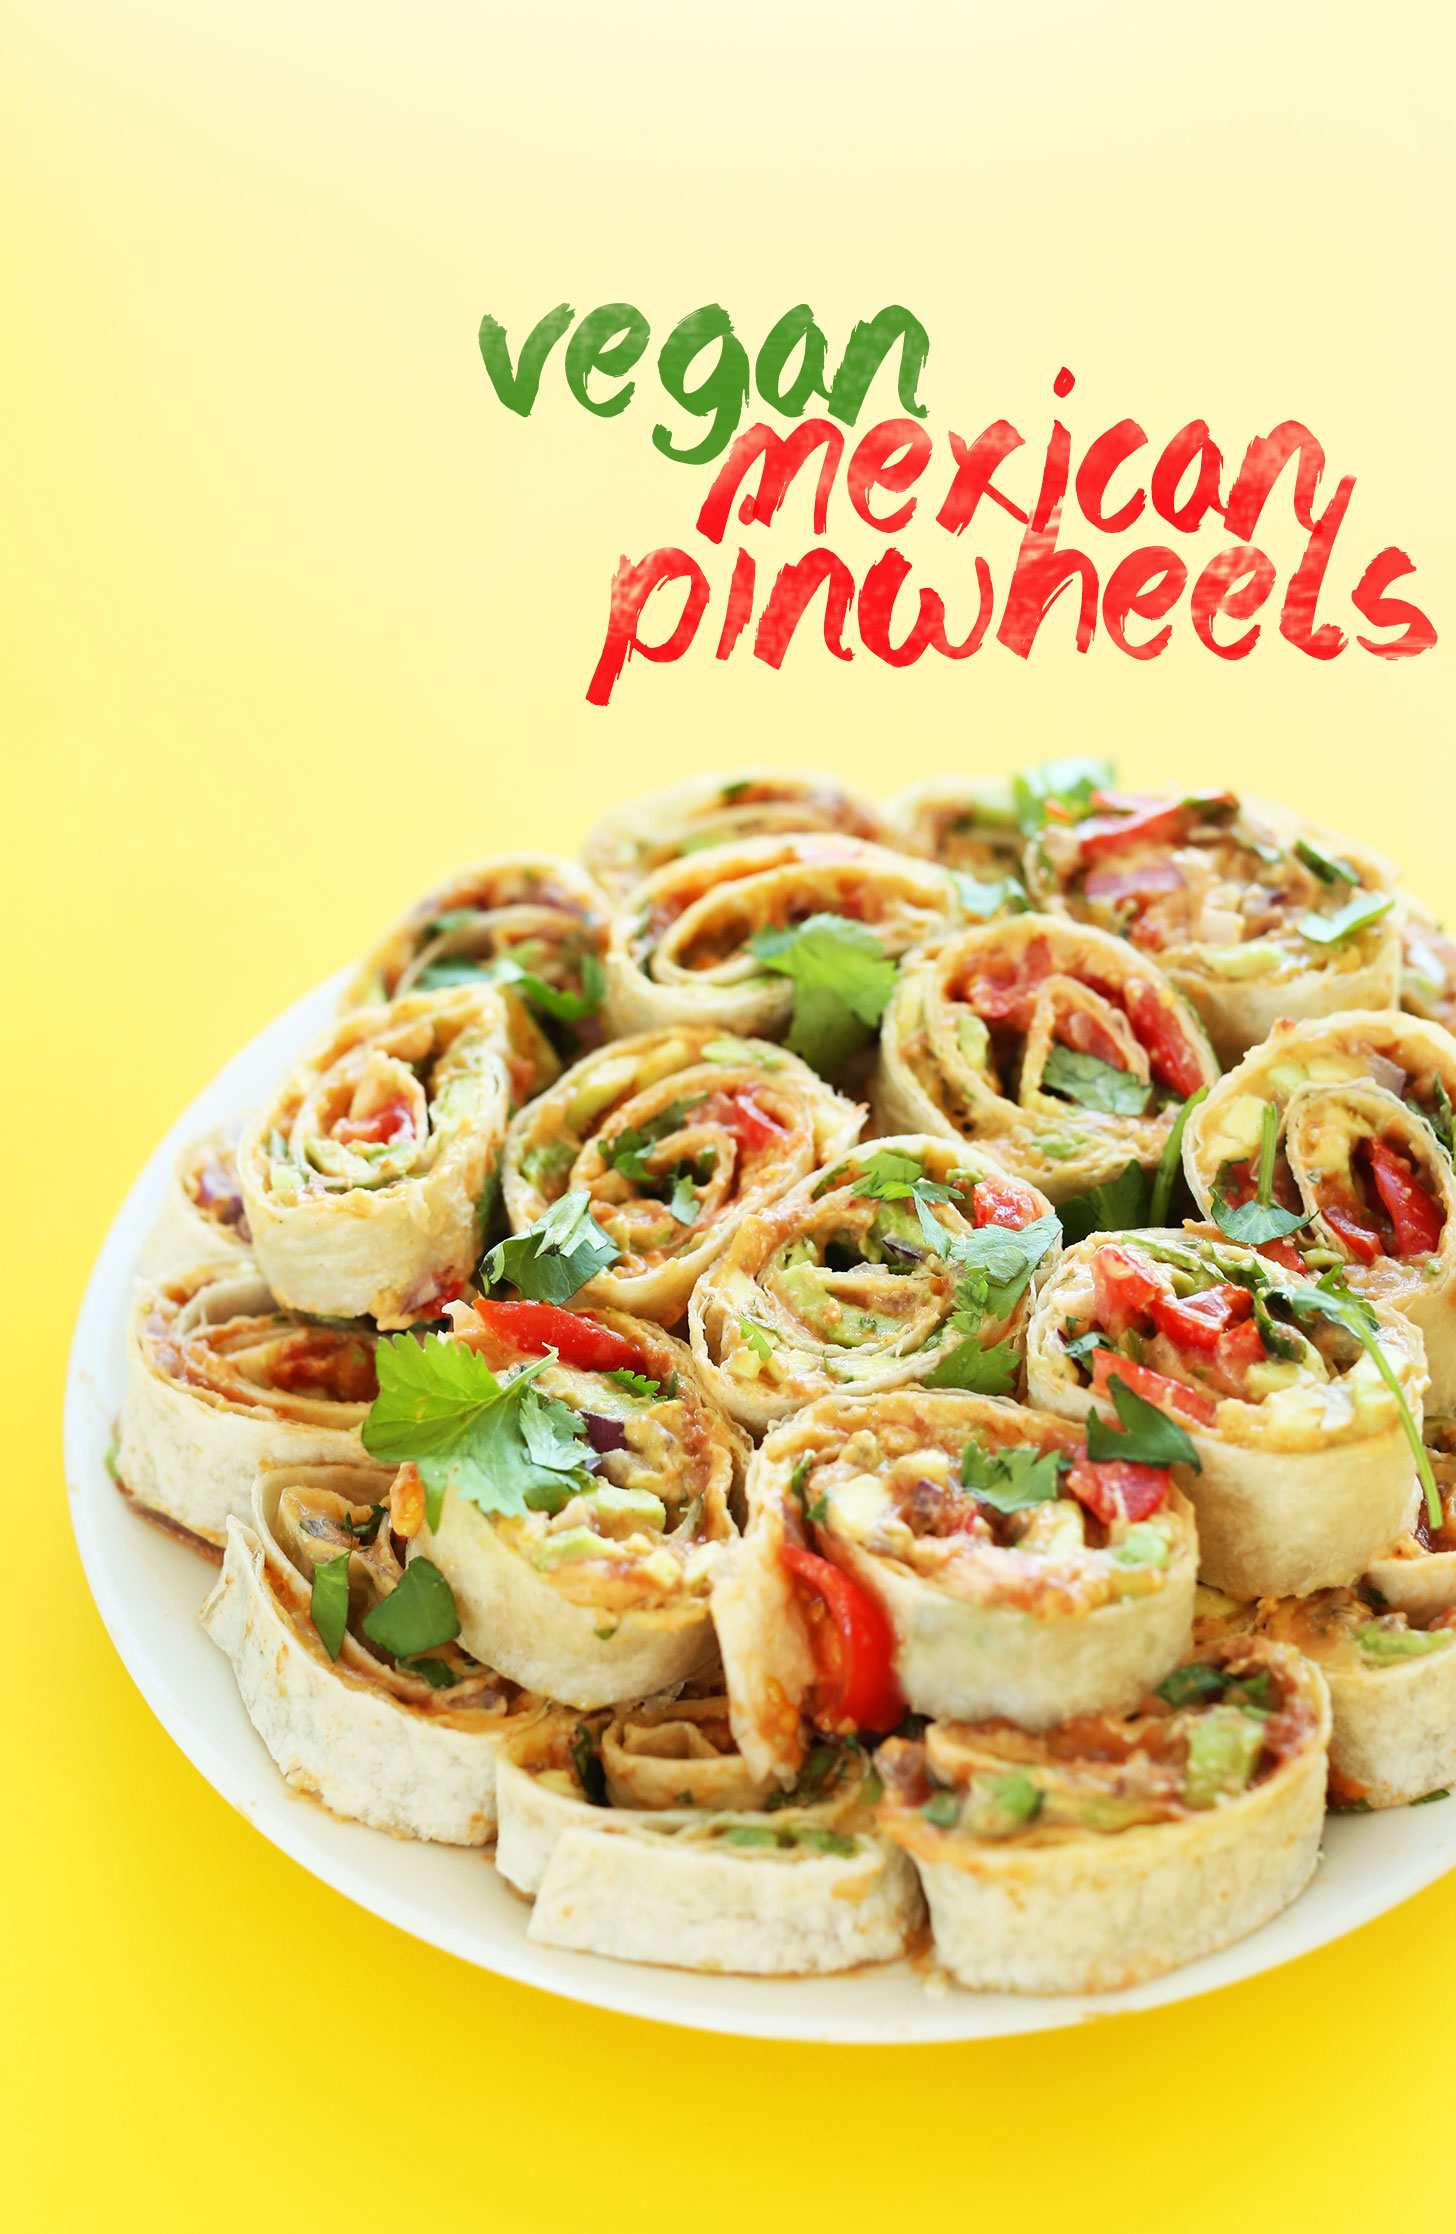 Plate of our Mexican Vegan Pinwheels recipe for a healthy vegan snack